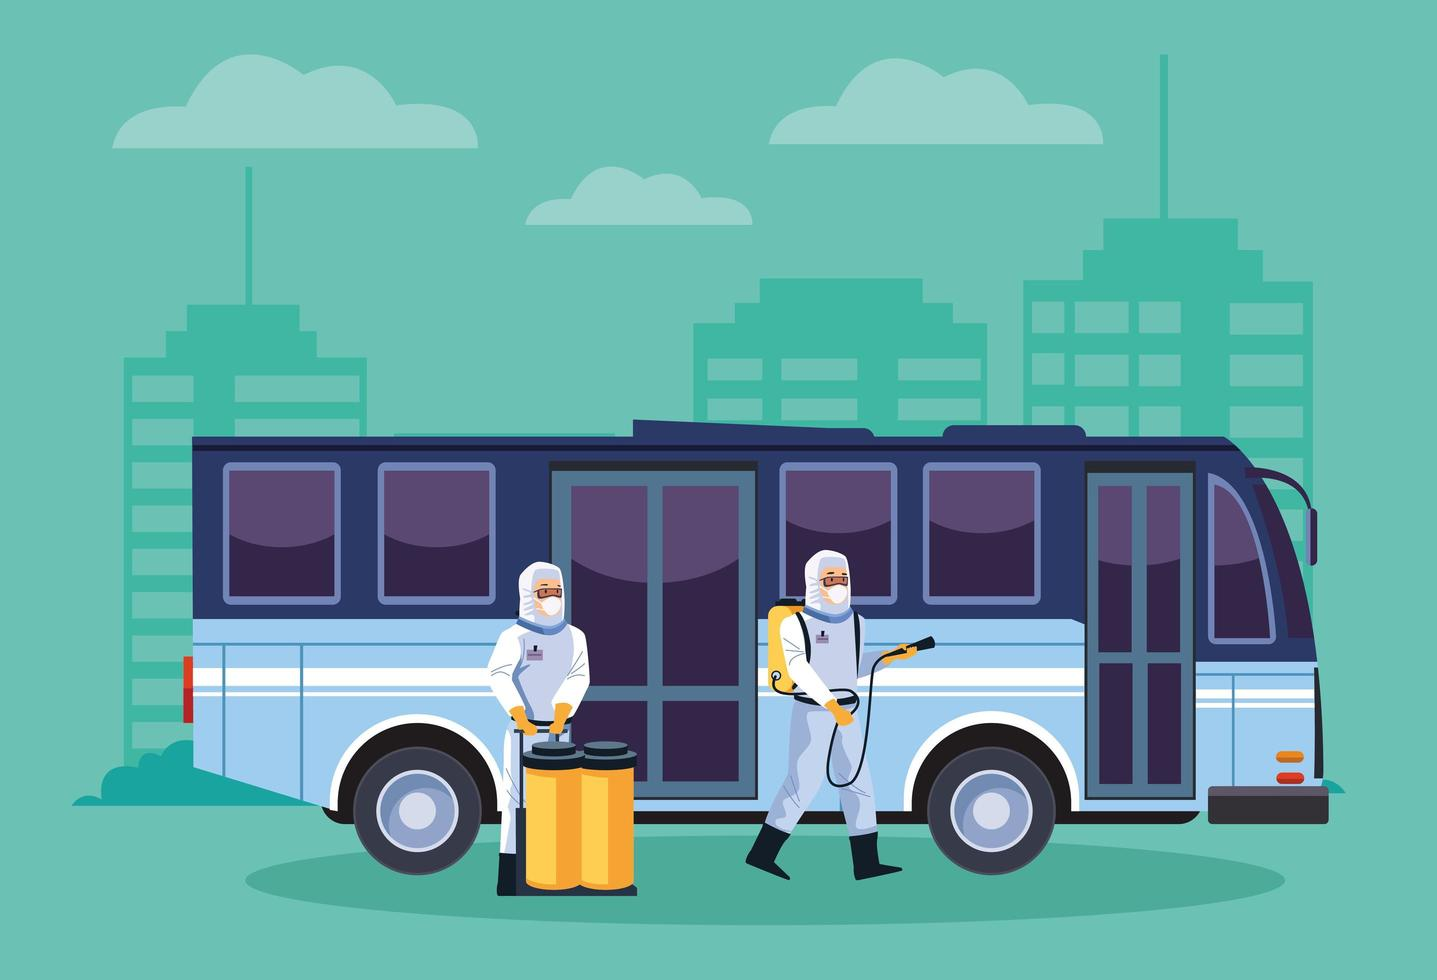 Biosafety workers disinfect bus against COVID 19 vector